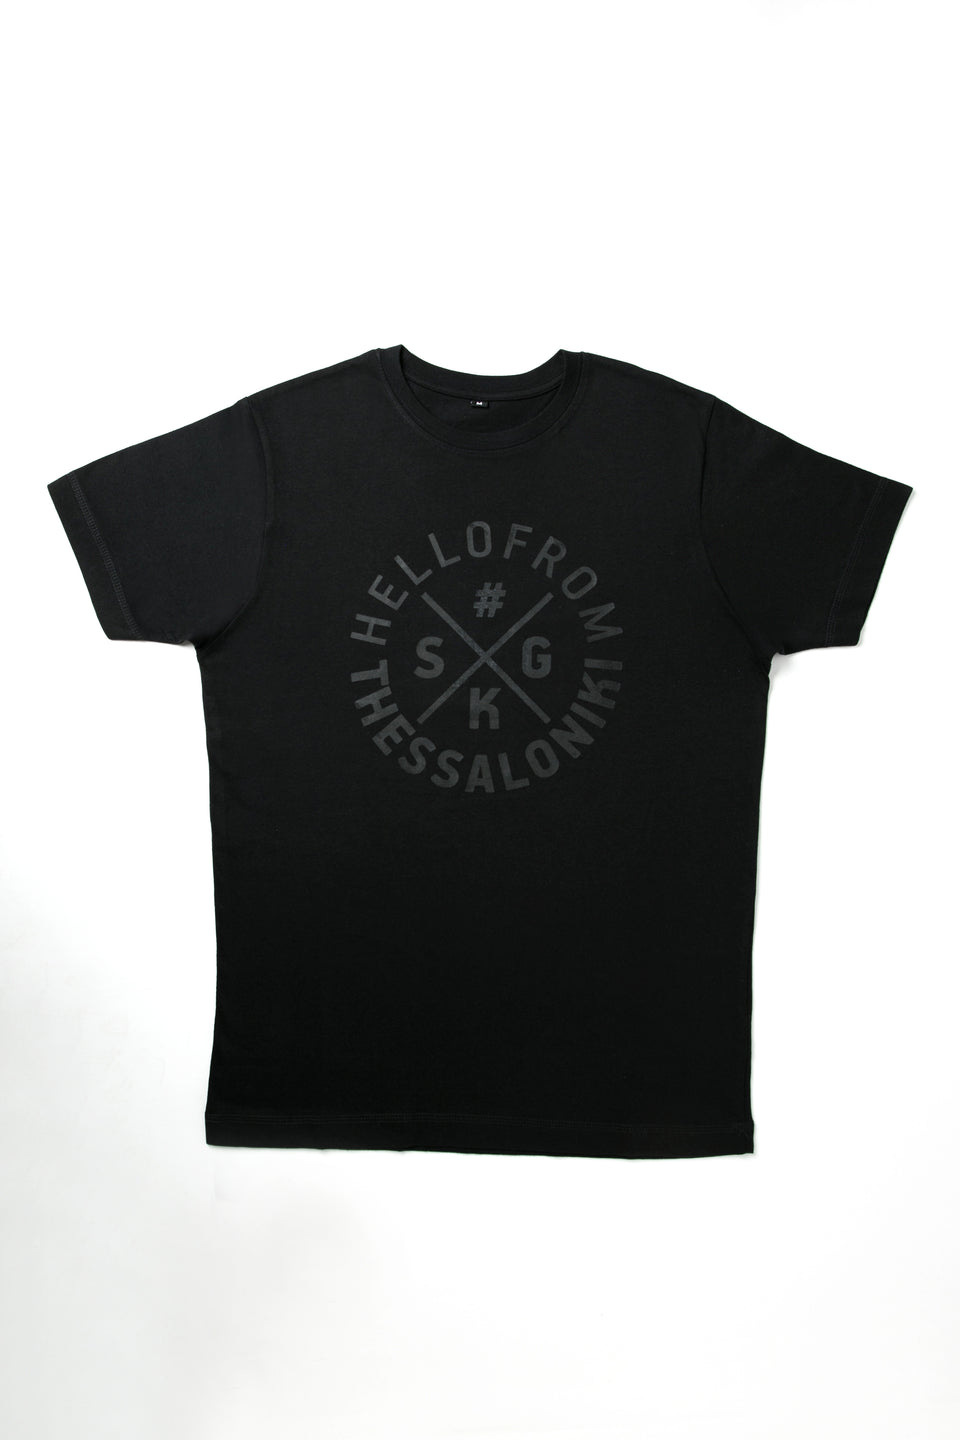 hellofrom Thessaloniki cotton T-shirt for him